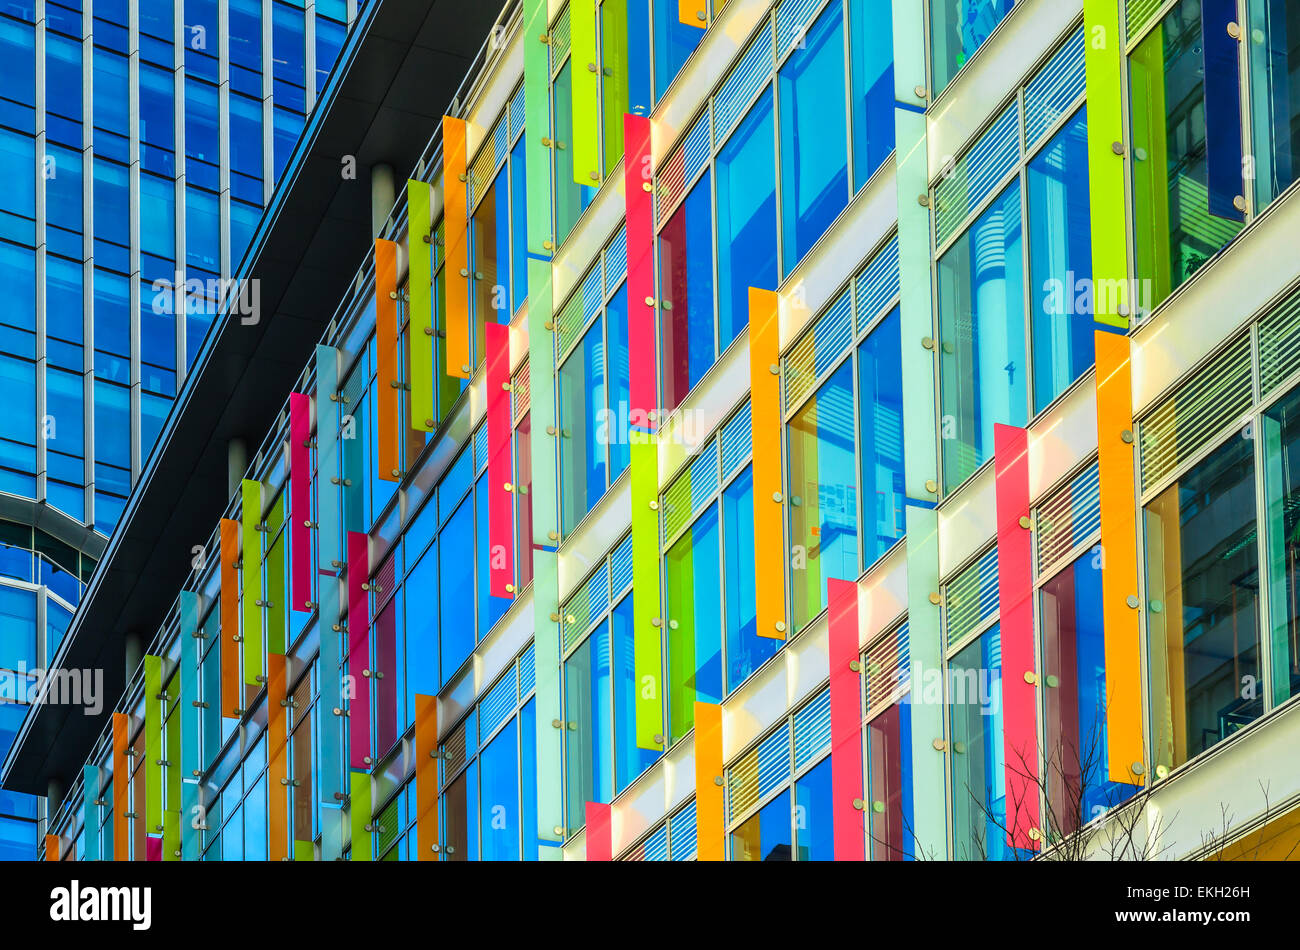 Modern building with multi-colored windows and design panels attached, in Amsterdam, Netherlands, horizontal position. - Stock Image